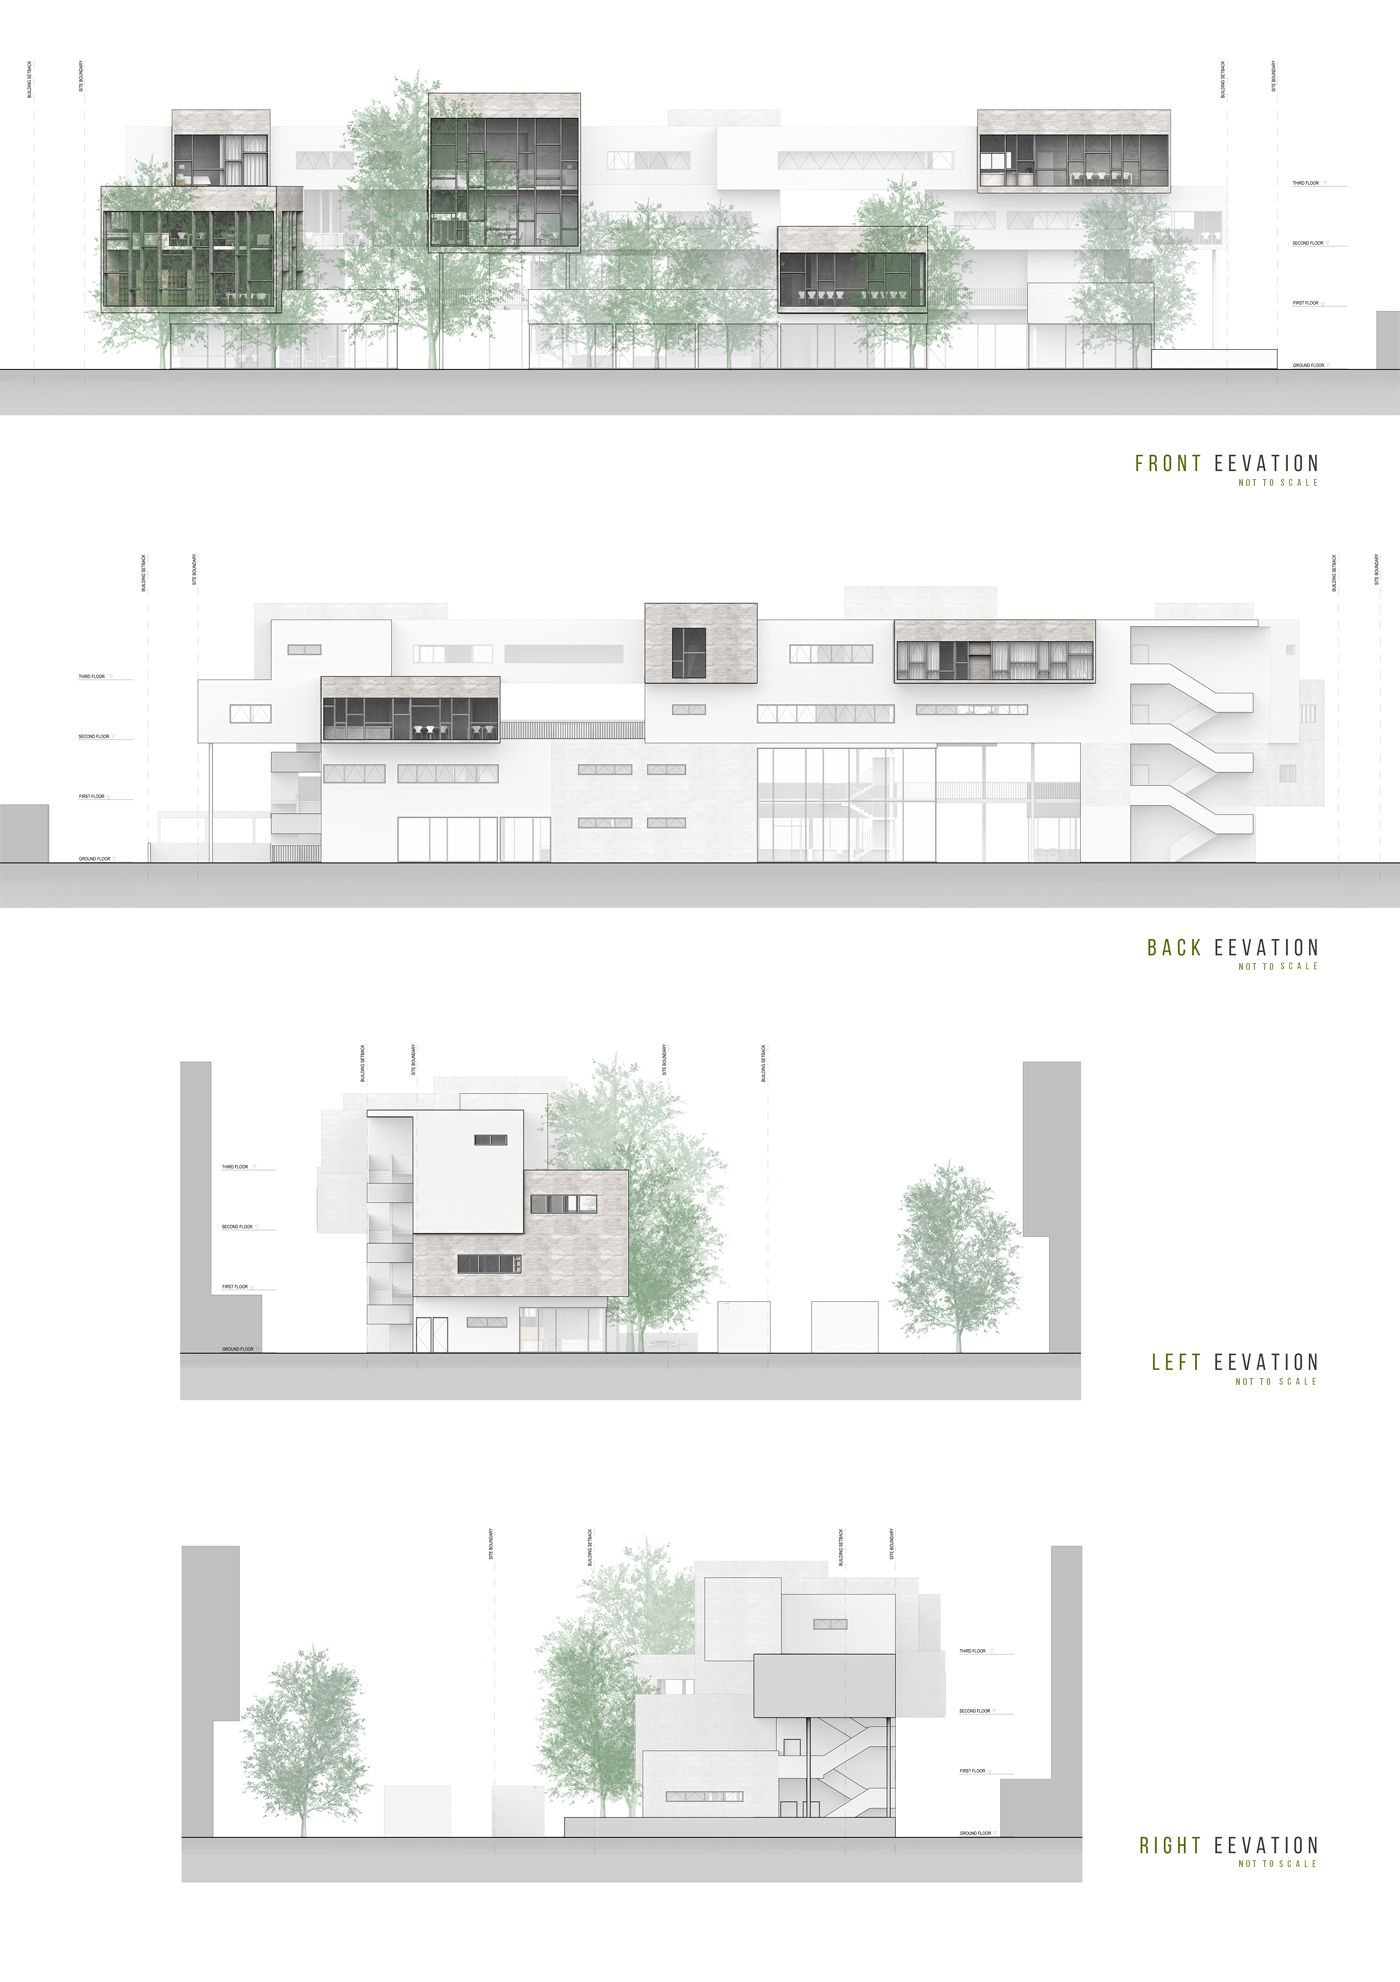 The Urban Elderly Community Center Is The Final Degree Project For My  Bachelor Of Architecture.